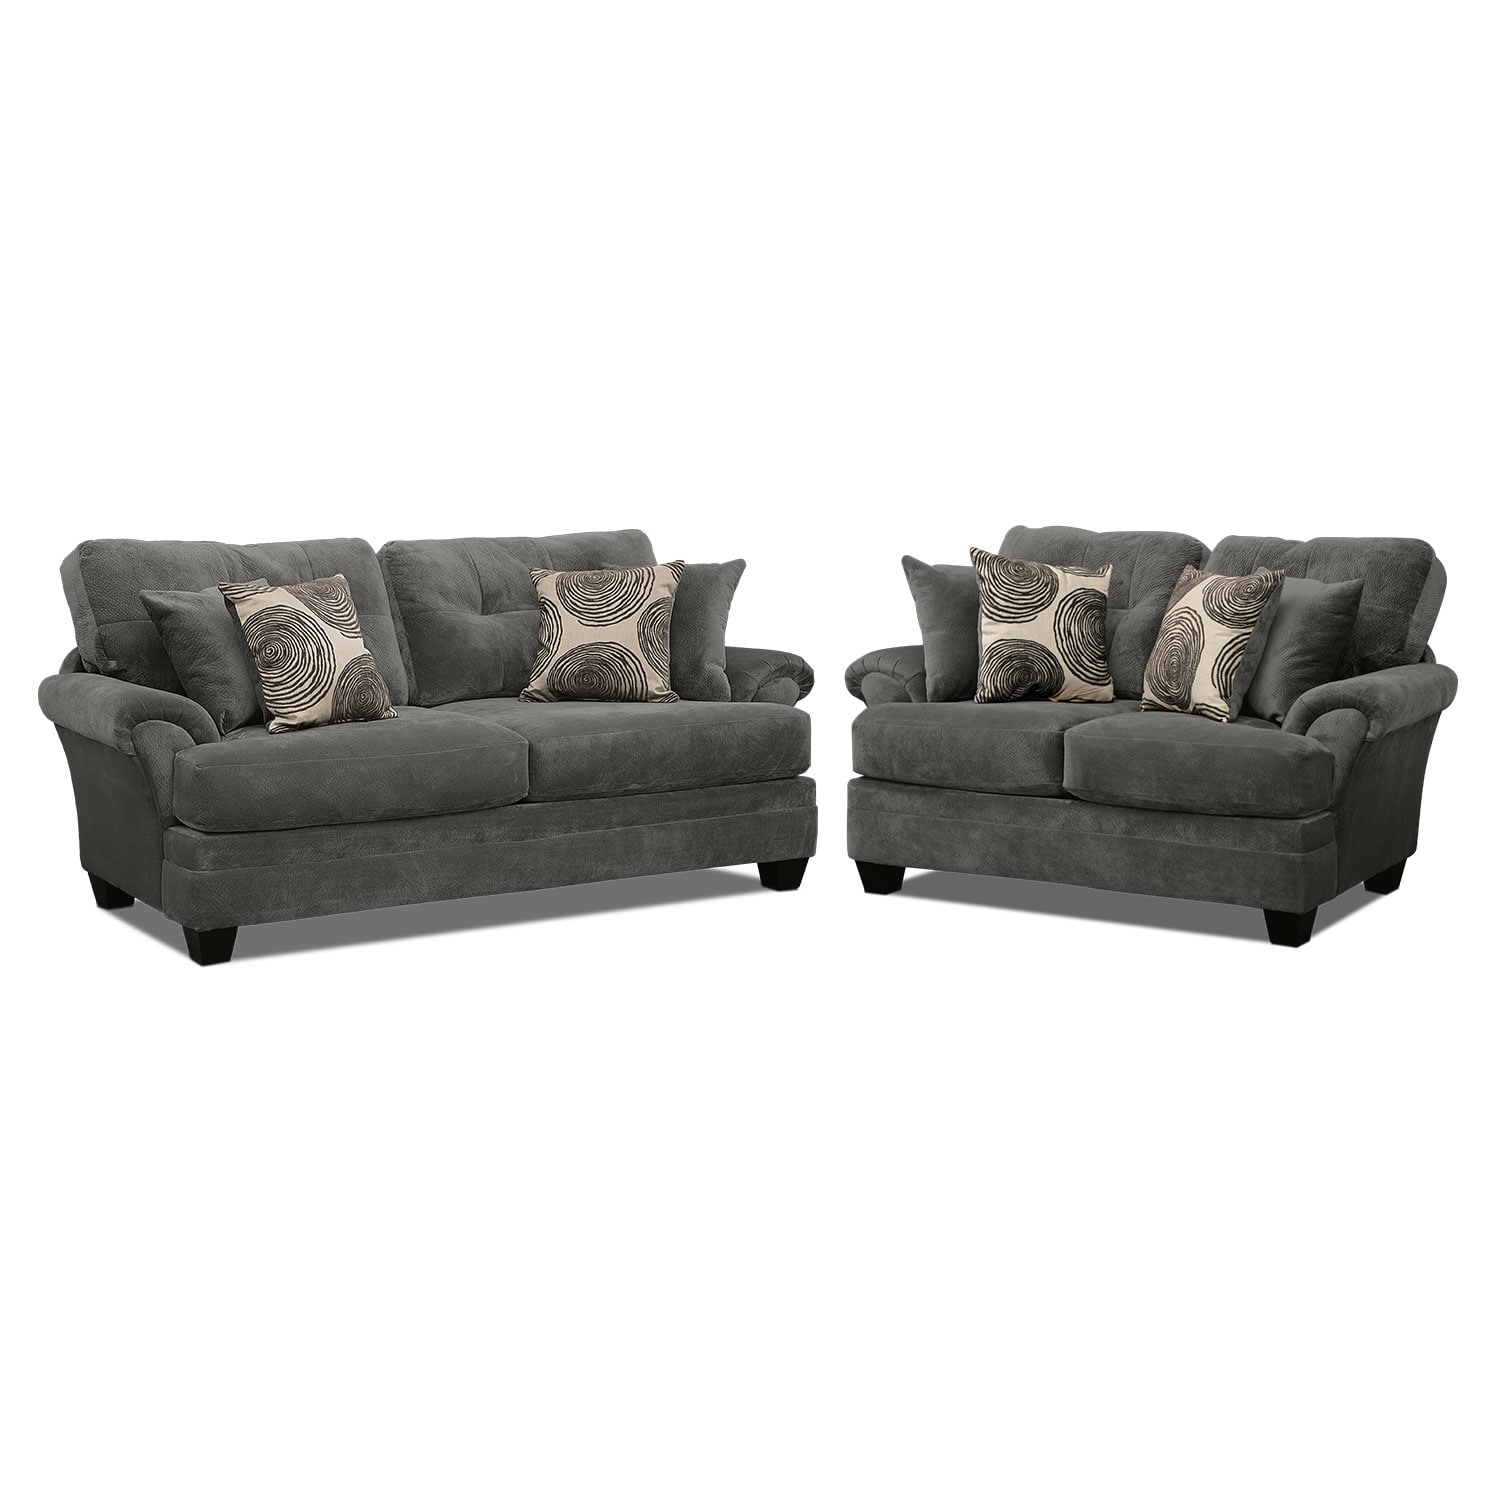 Cordelle Sofa and Loveseat Set - Gray